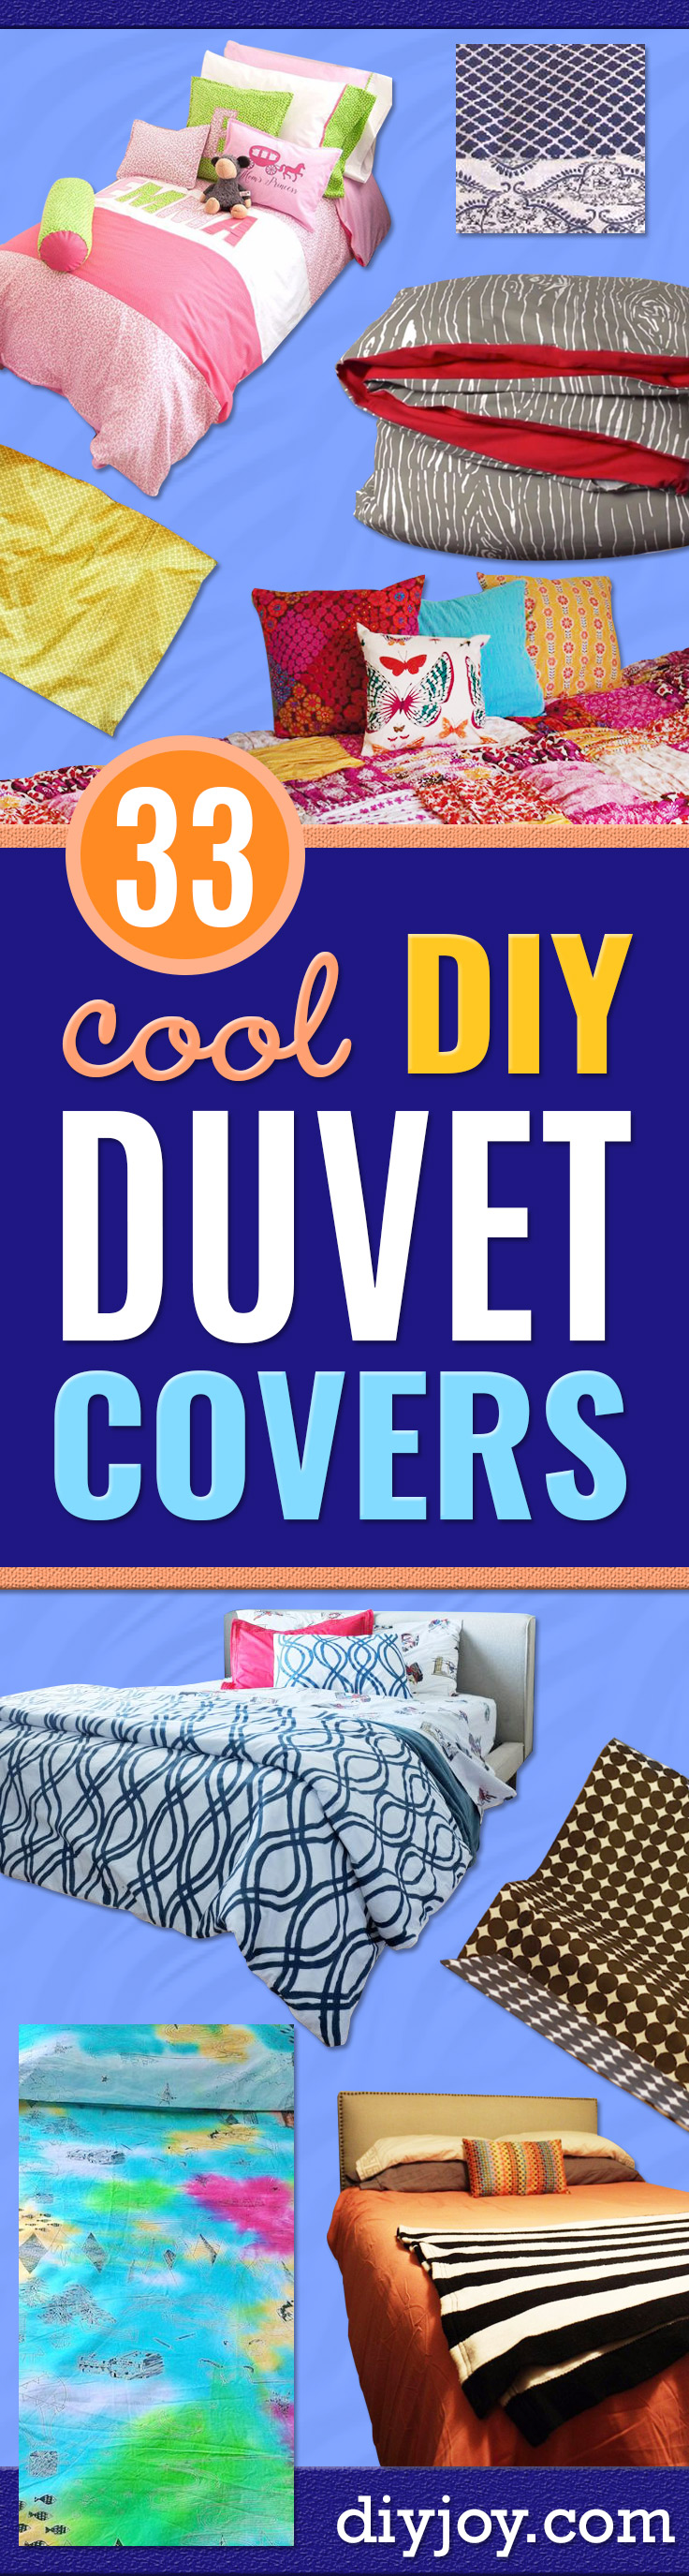 DIY Duvet Covers - Easy Sewing Projects and No Sew Ideas for Duvets - Cheap Bedroom Decor Ideas on A Budget - How To Sew A Duvet Cover and Bedding Tutorial - Creative Covers for Bed - Quick Projects for Making Designer Duvets - Awesome Home Decor Ideas and Sewing Projects for Homemade Bedding Ideas #sewing #roomdecor #diyideas